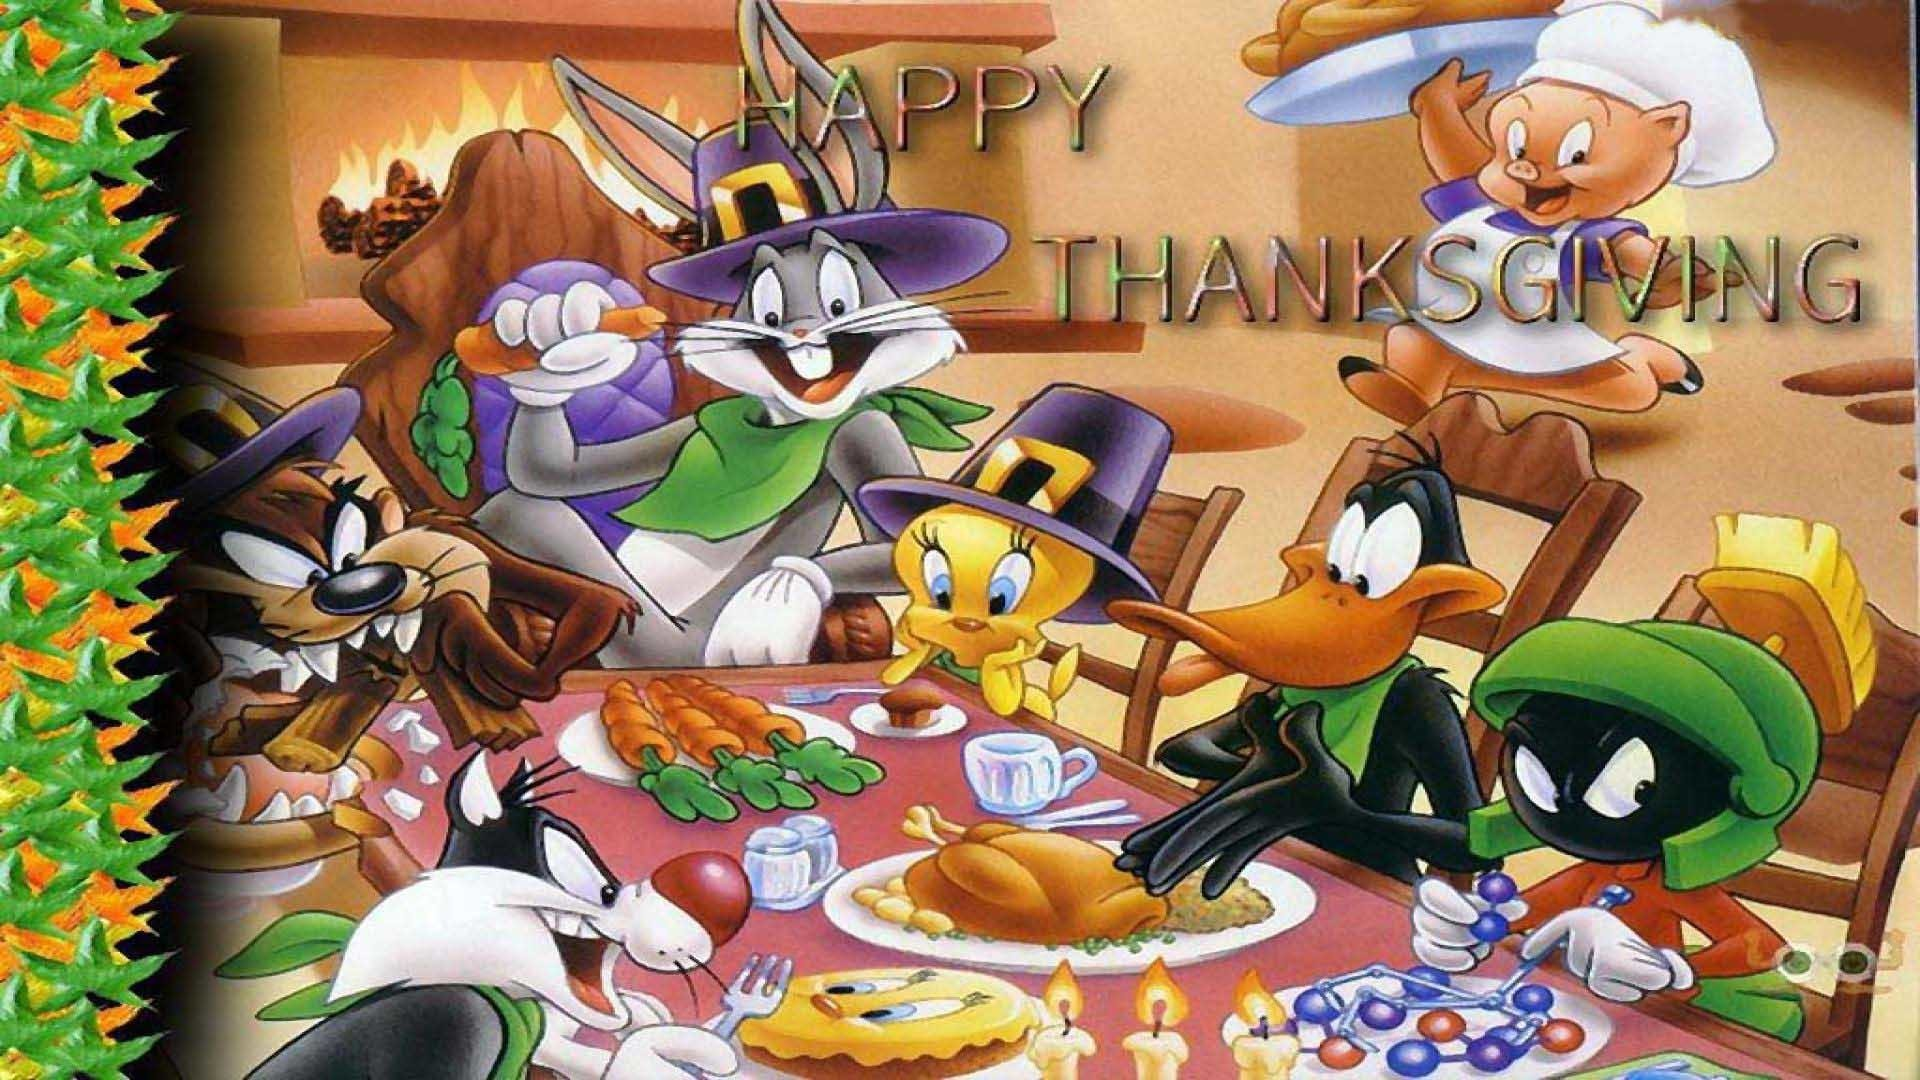 1920x1080  funny thanksgiving pictures and quotes | Funny Thanksgiving  Wallpaper | The Now Forgotten Holiday....Thanksgiving | Pinterest |  Thanksgiving ...